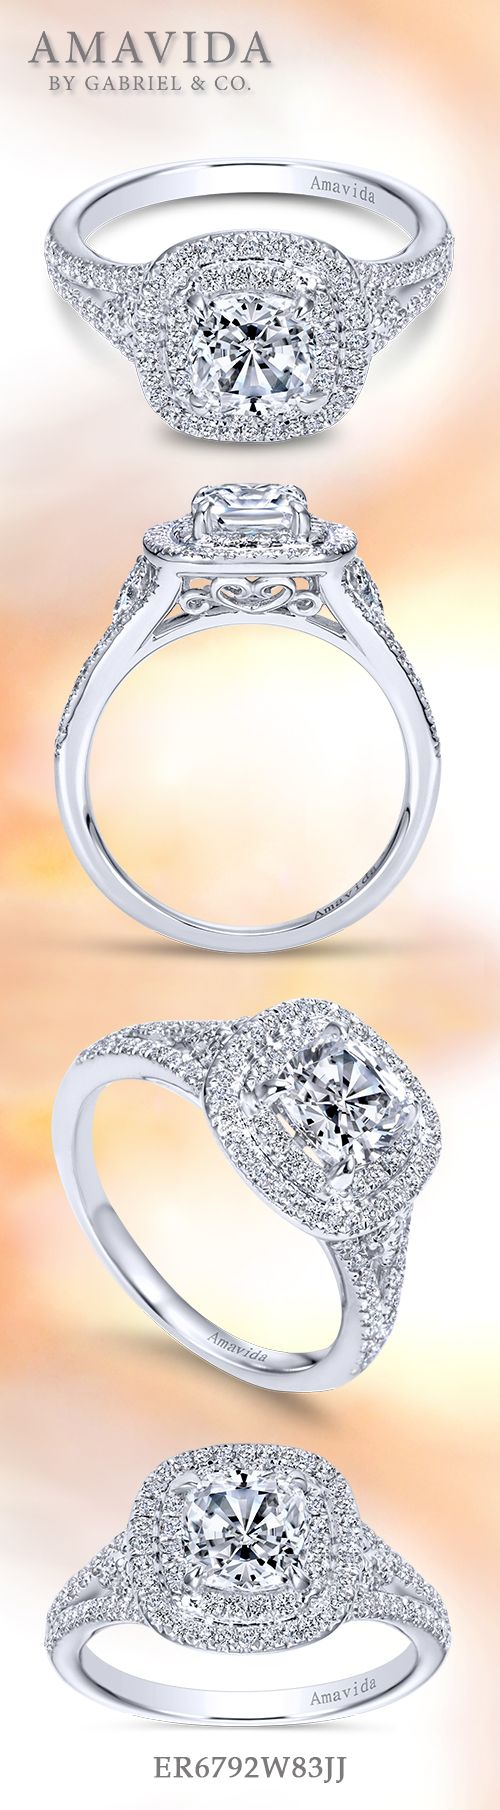 Gabriel & Co. - Voted #1 Most Preferred Bridal Brand.   Shimmering pave diamonds adorn the 18k White Gold Cushion Cut Double Halo  Engagement Ring.